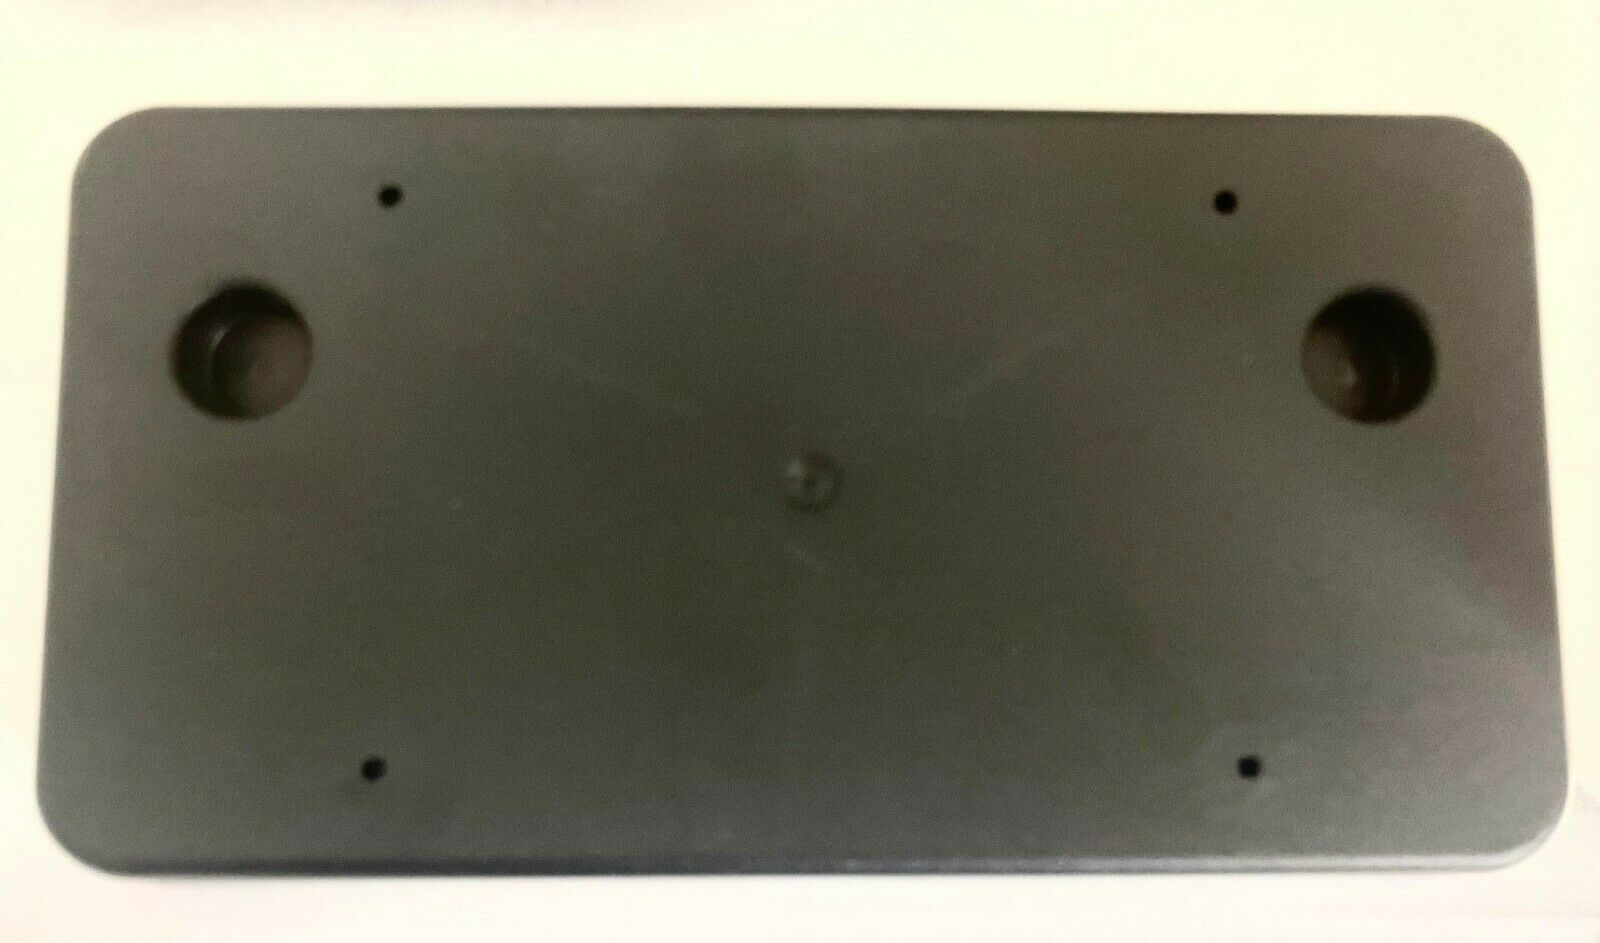 NEW Cadillac XT6 2019 2020 License Plate MOUNT BRACKET